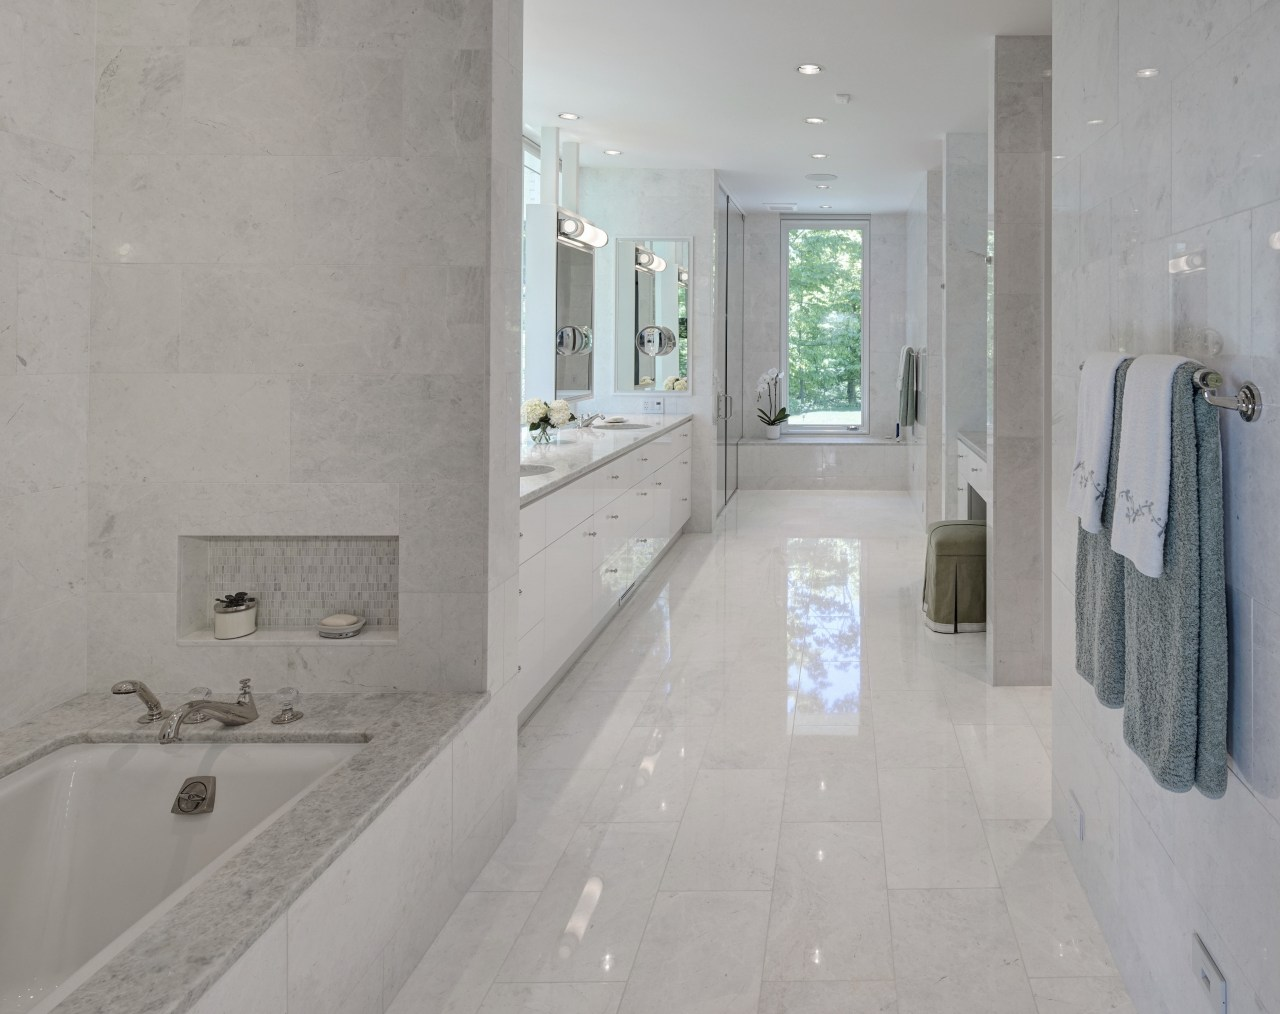 Reflective surfaces were specified to create a tranquil, bathroom, estate, floor, flooring, home, interior design, plumbing fixture, property, real estate, room, tile, wall, gray